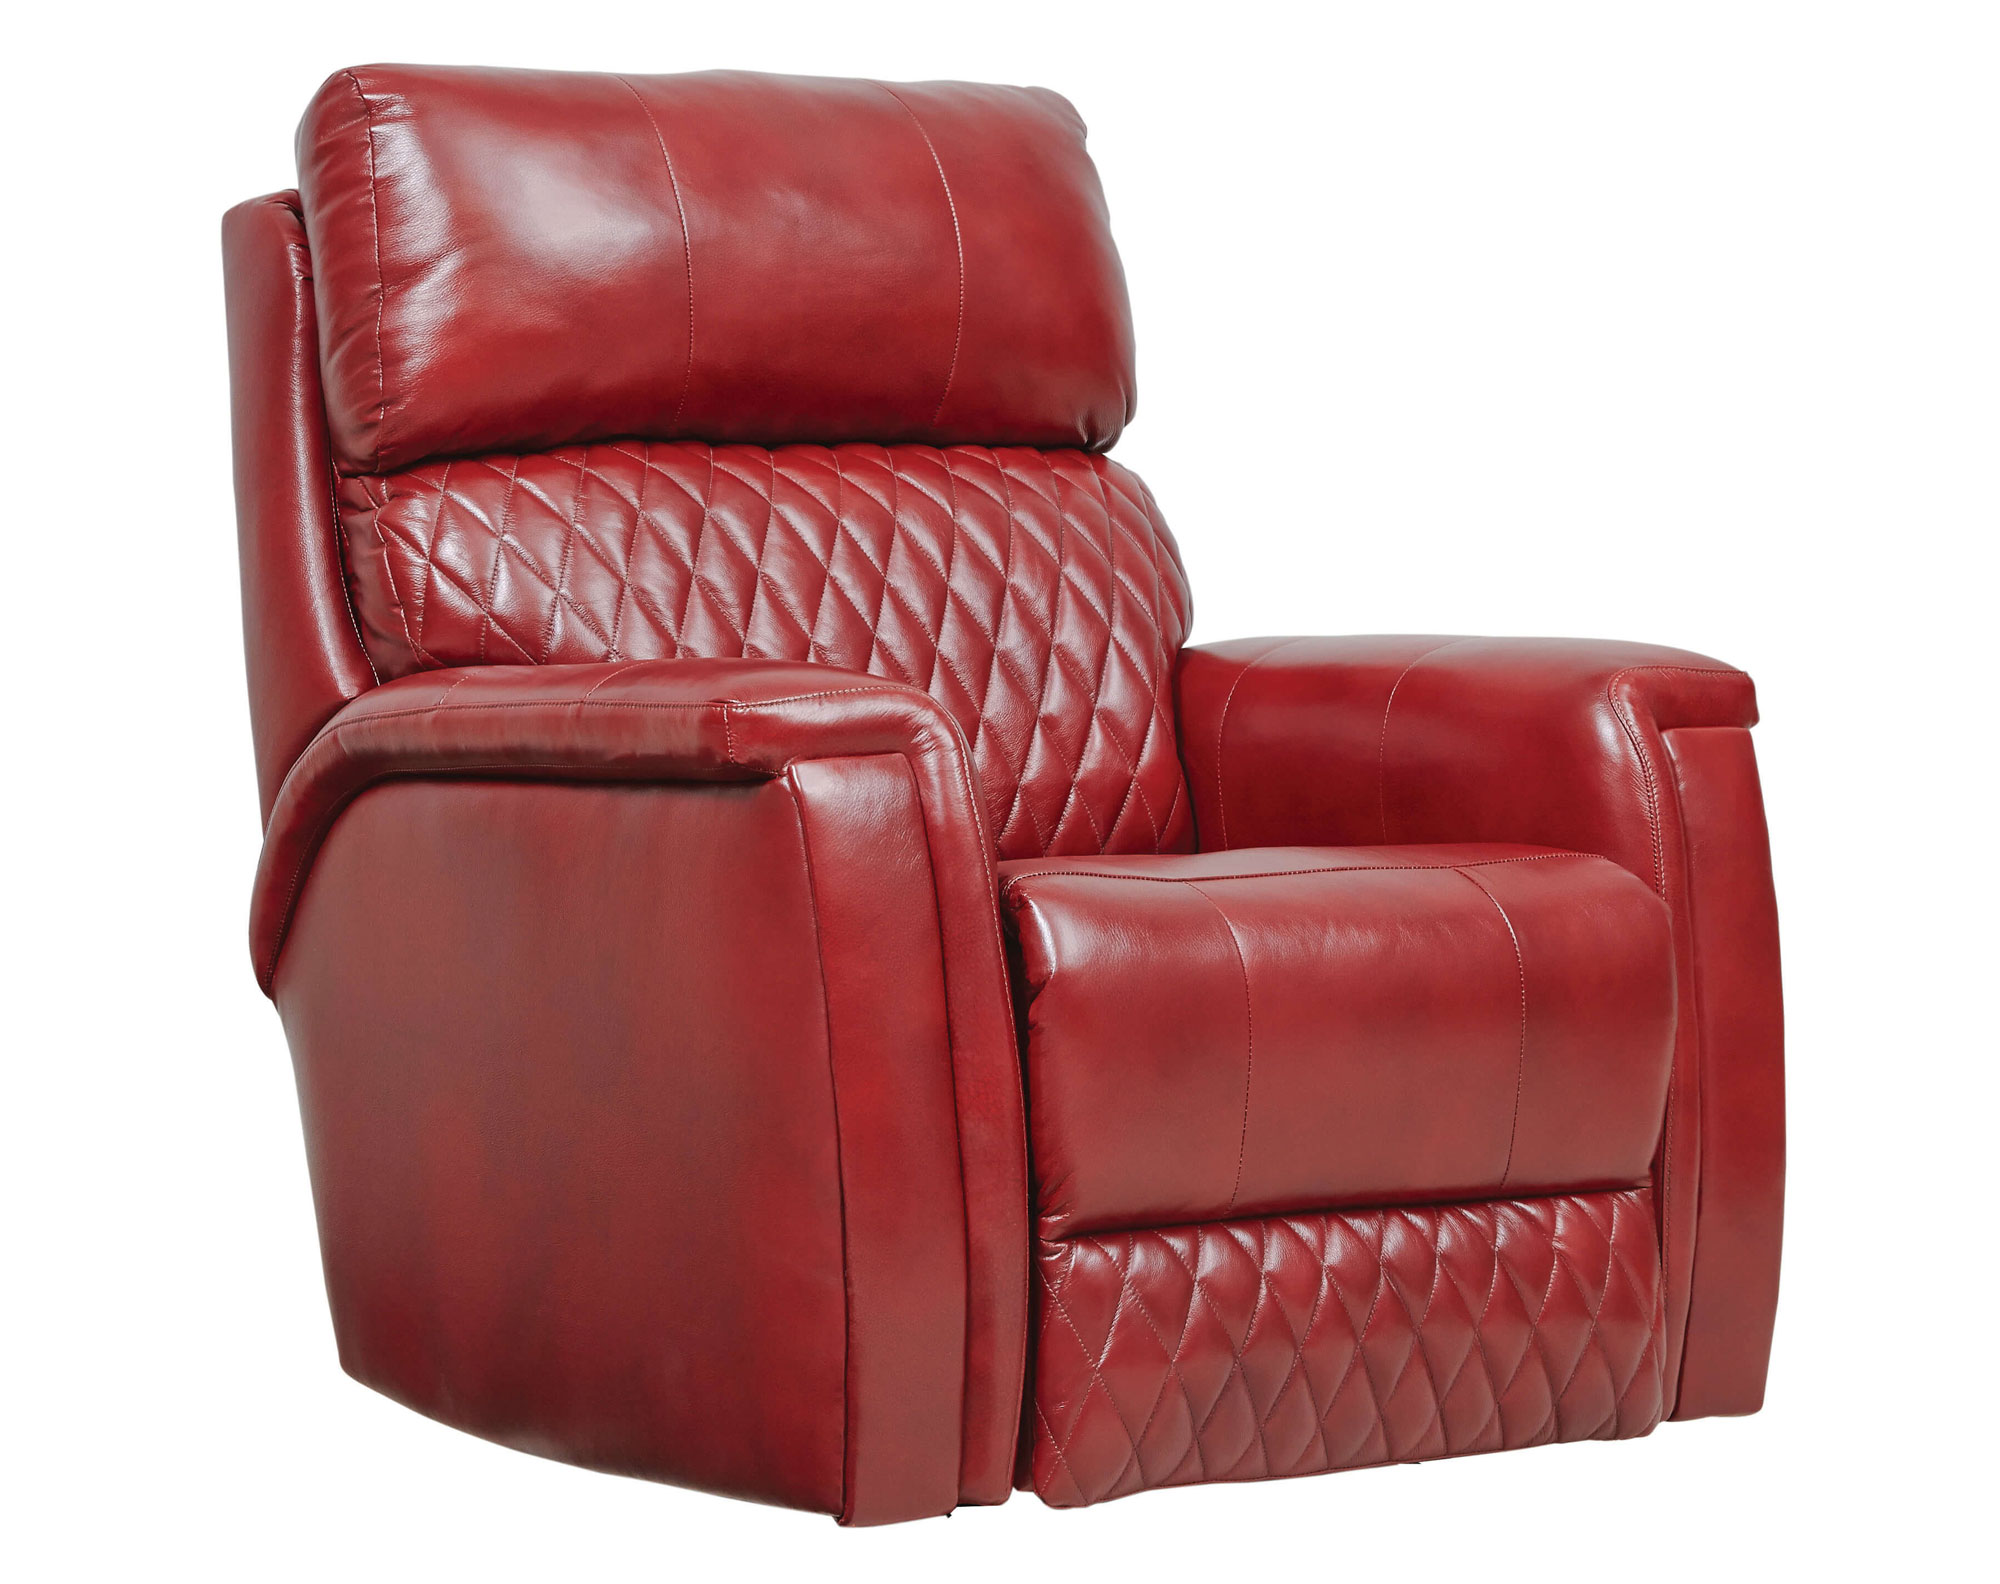 High Rise Recliner 140 Fabrics And Leathers Sofas And Sectionals